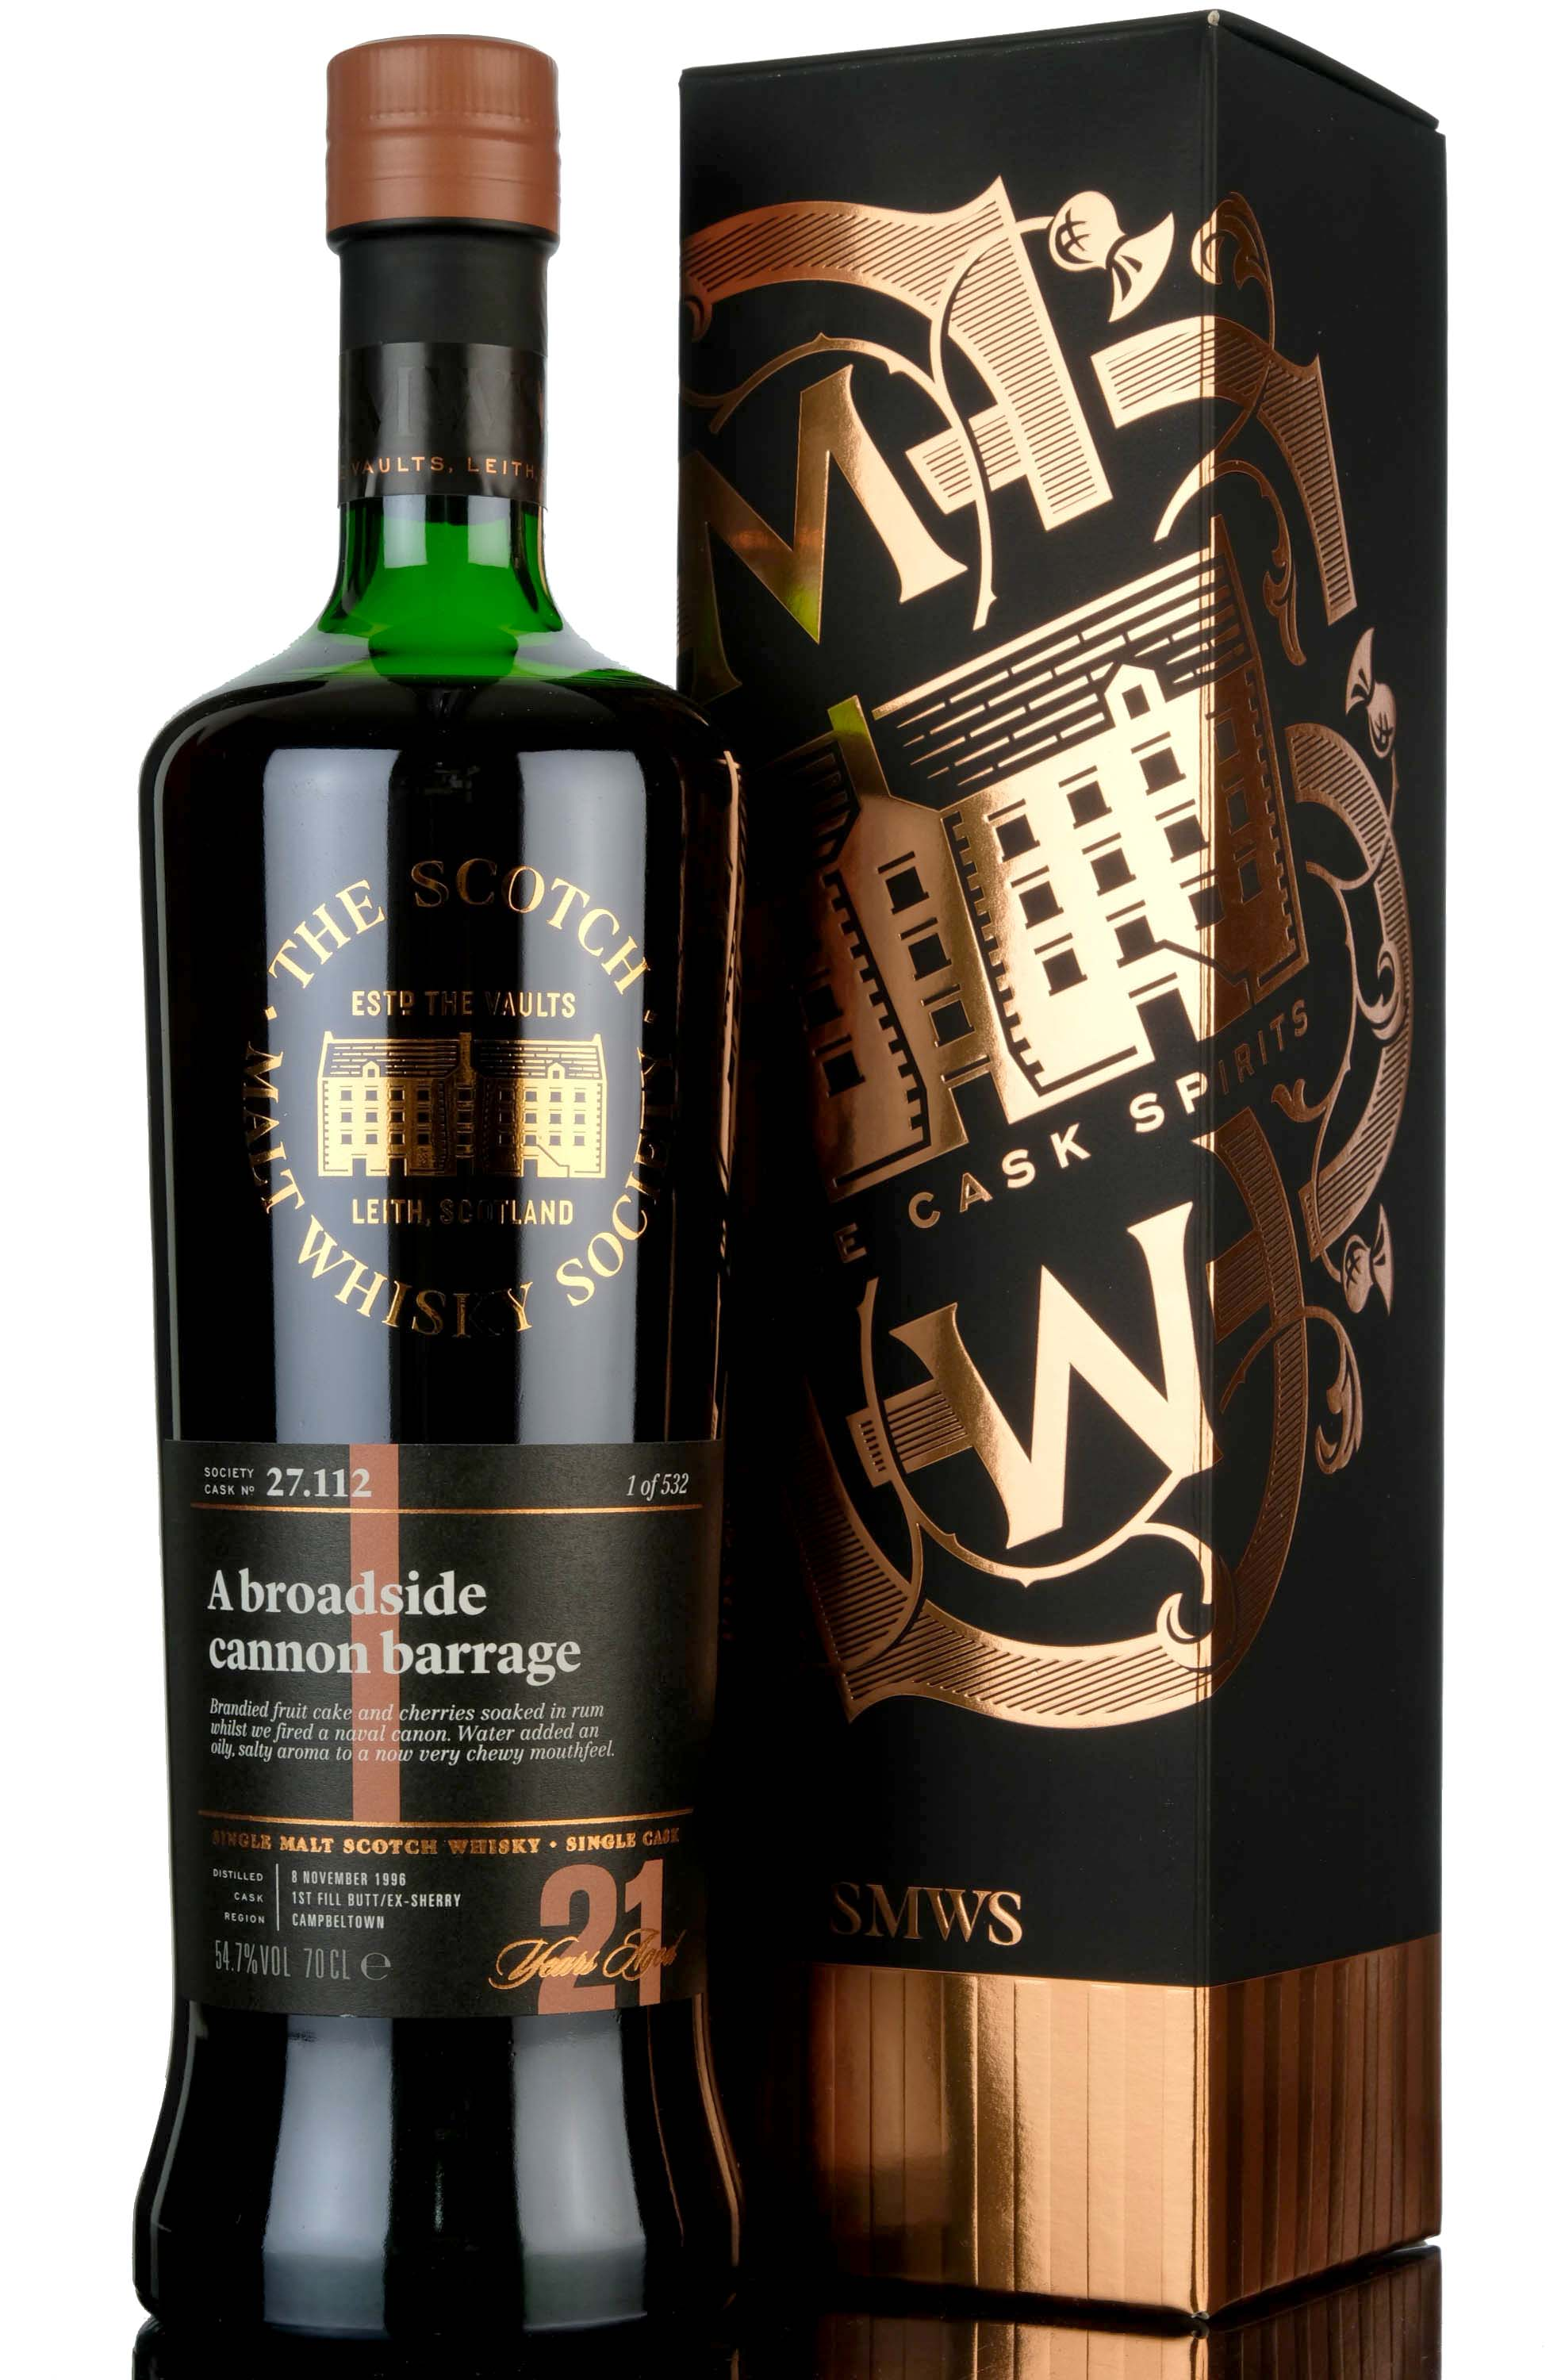 springbank 1996 - 21 year old - smws 27.112 - a broadside cannon barrage